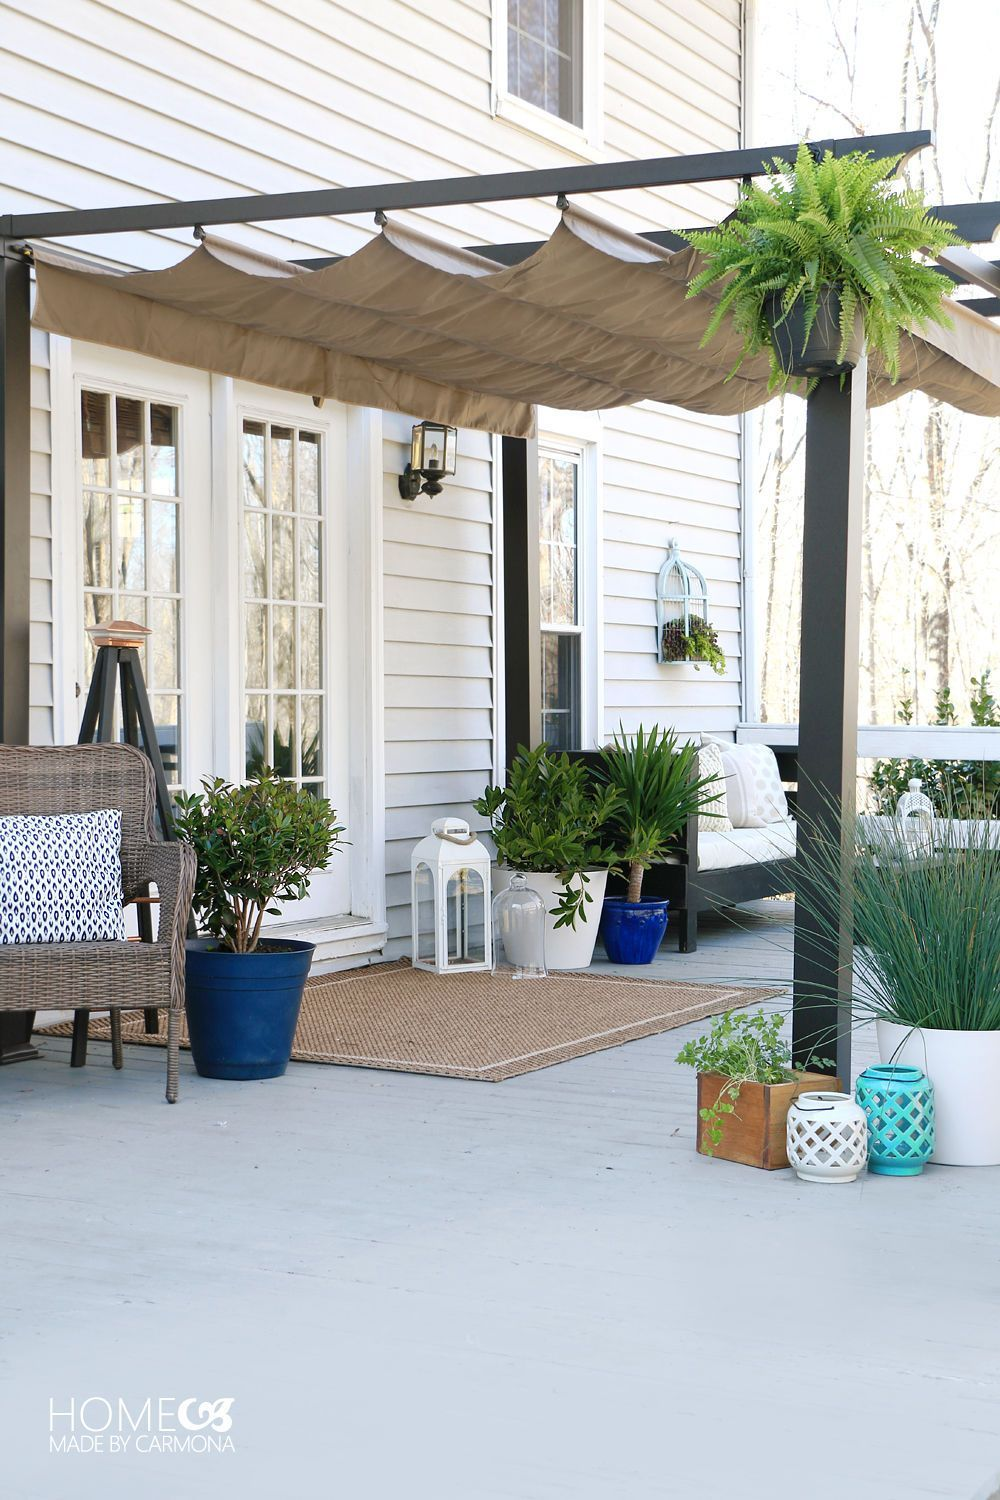 Decoration Terrasse Simple Simple Patio Styling From Homemadebycarmona Titoua En